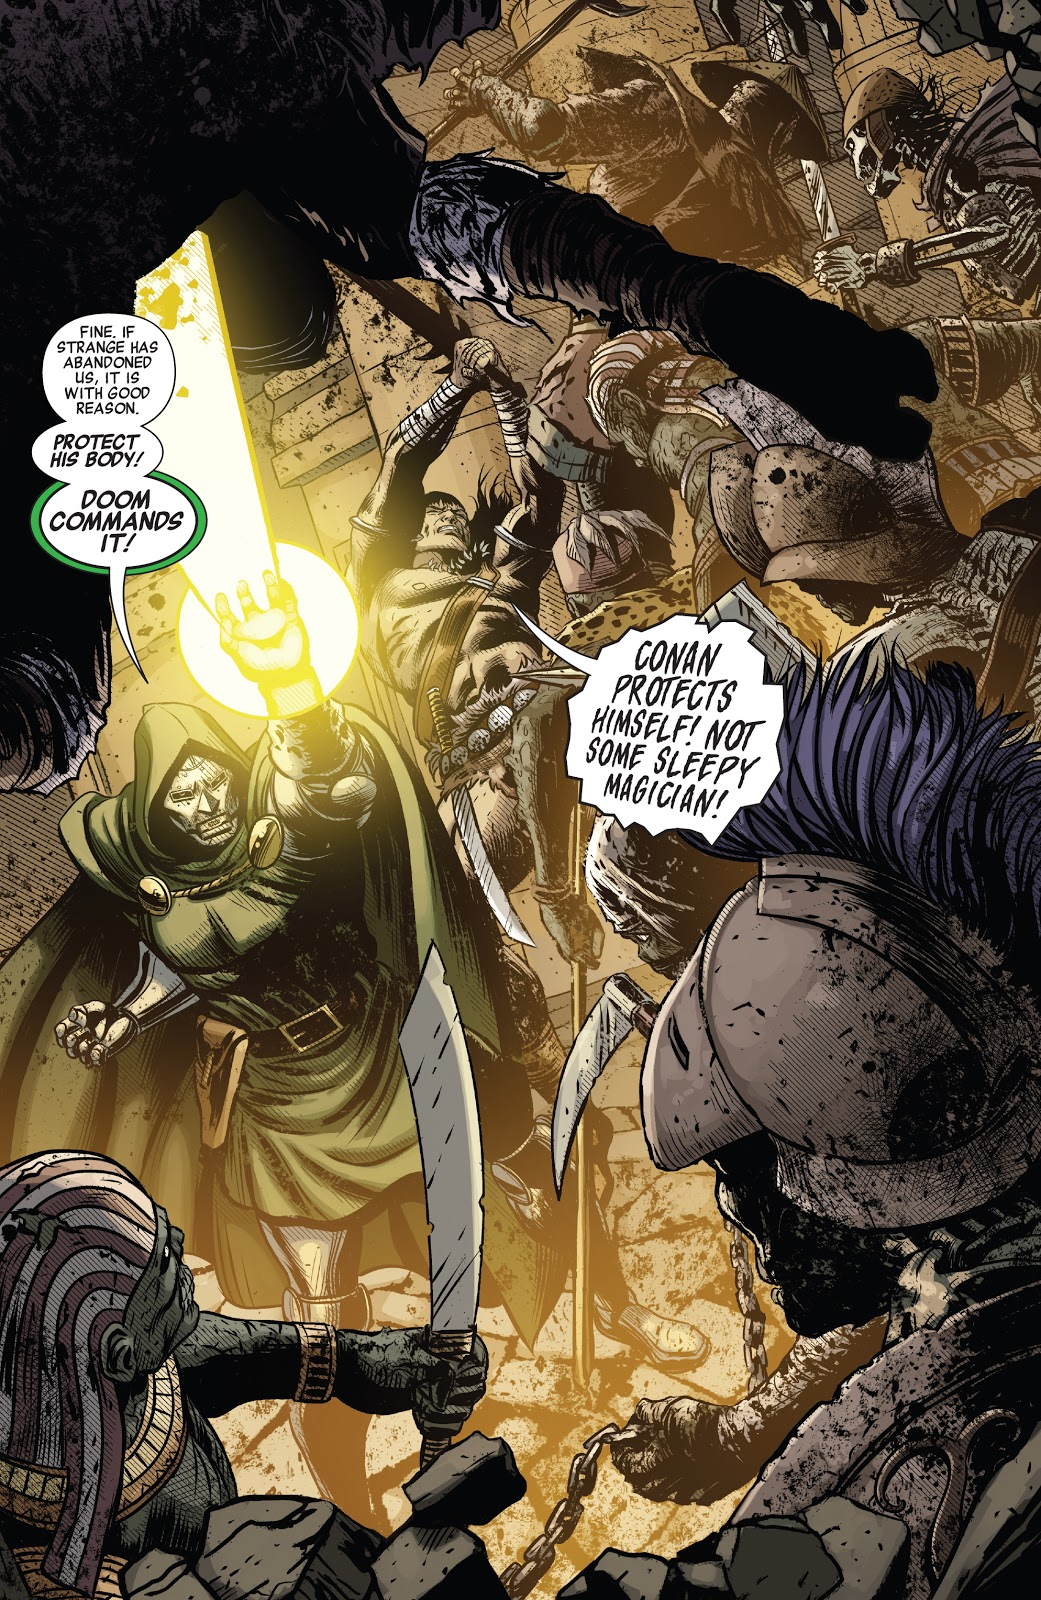 Doctor Doom And Conan The Barbarian